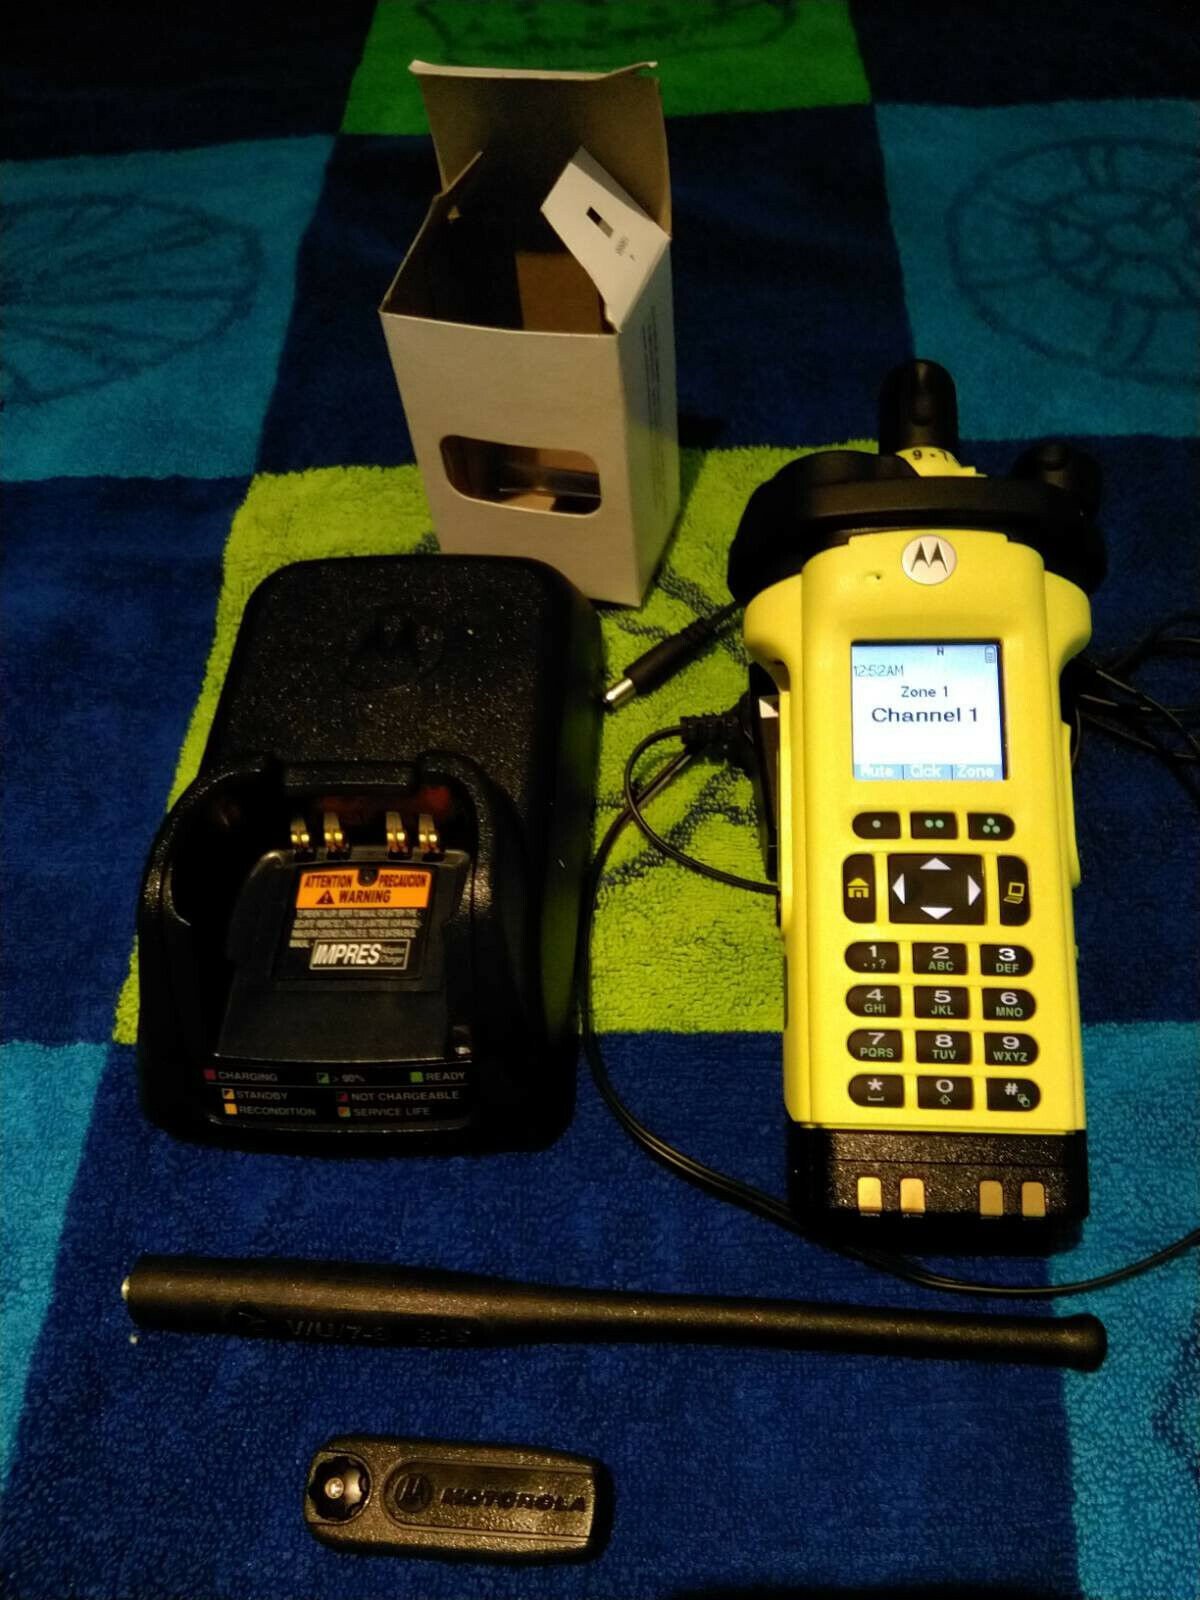 Motorola APX8000XE VHF UHF 7/800 ADP AES DES FPP (YELLOW) Tuned and Checked. Available Now for 5000.00